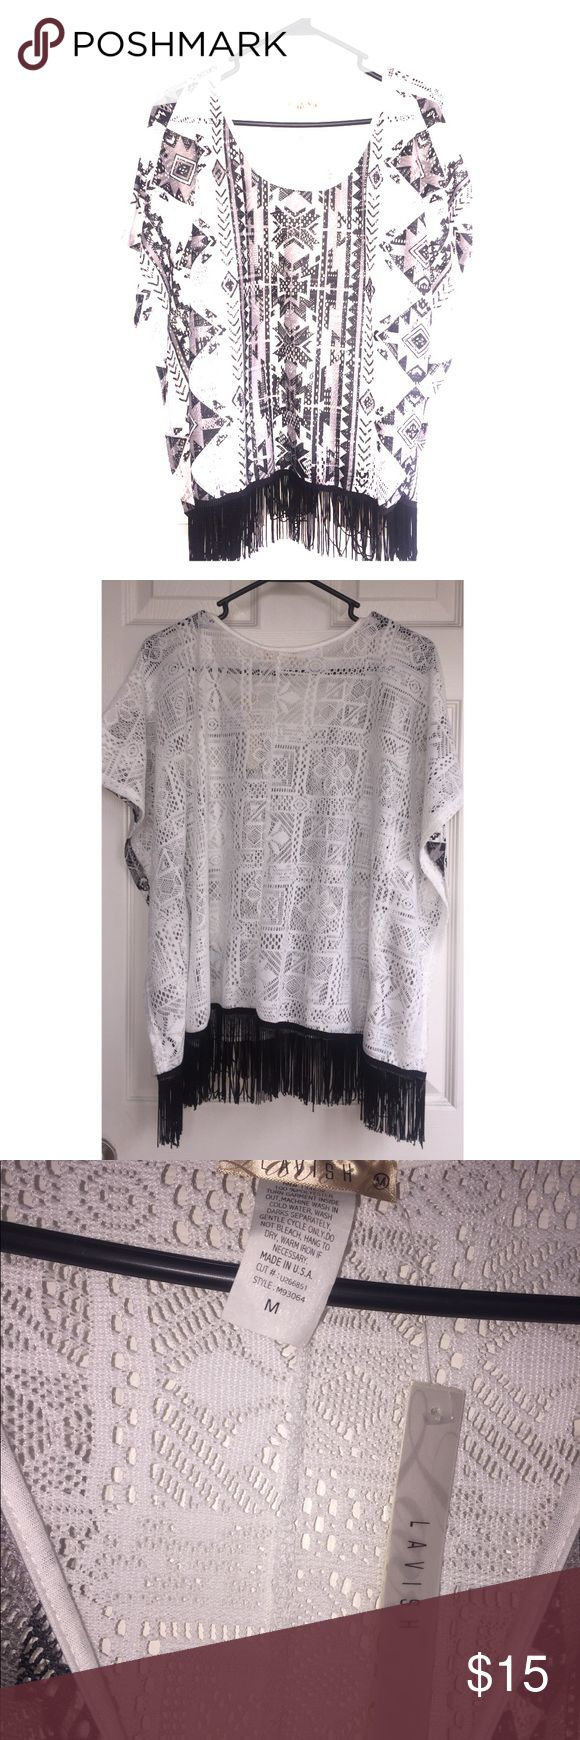 Fringe blouse Bottom fringe, native southwest designs, black and white, see threw. Never worn, tag still on there. Tops Blouses